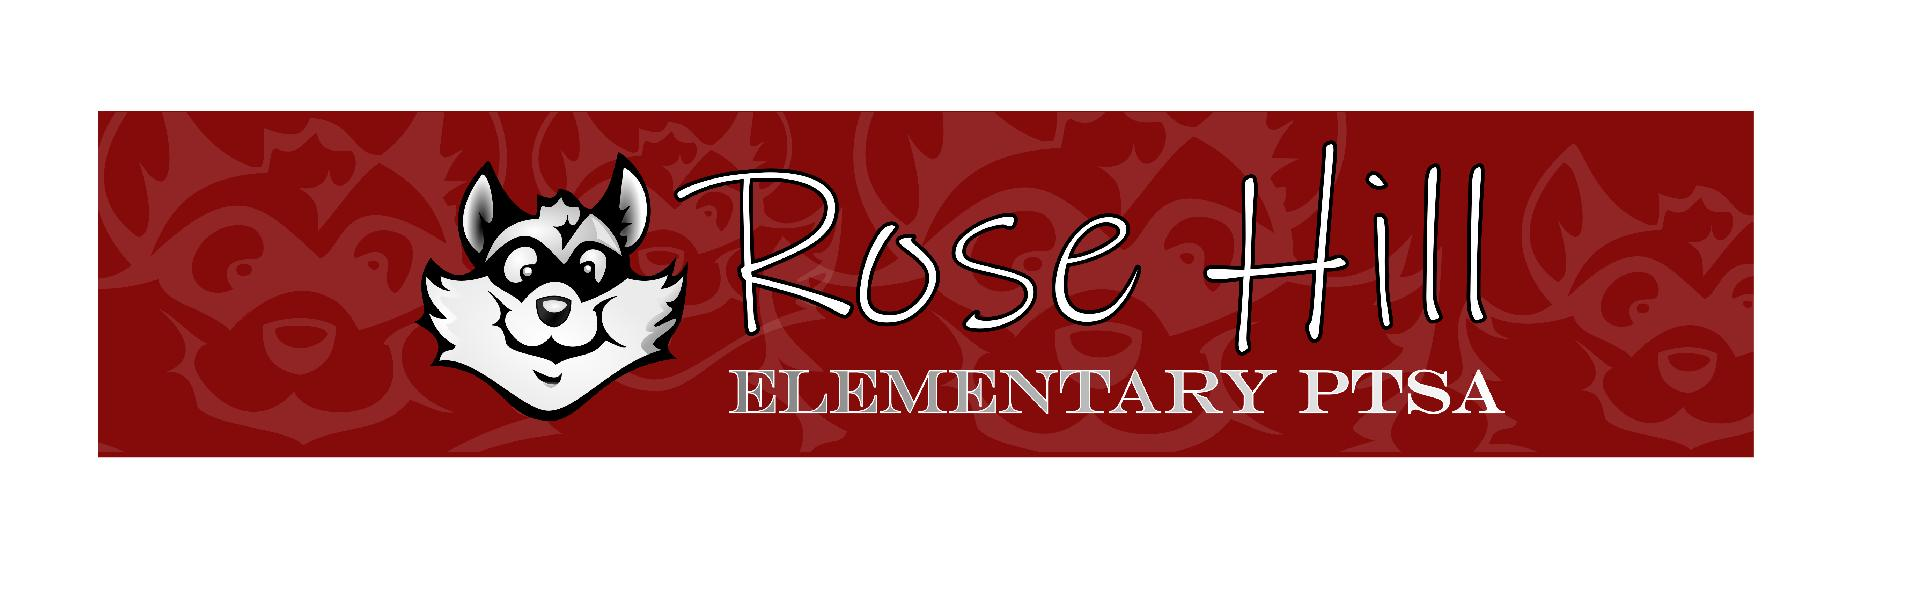 Rose Hill Elementary PTSA Website